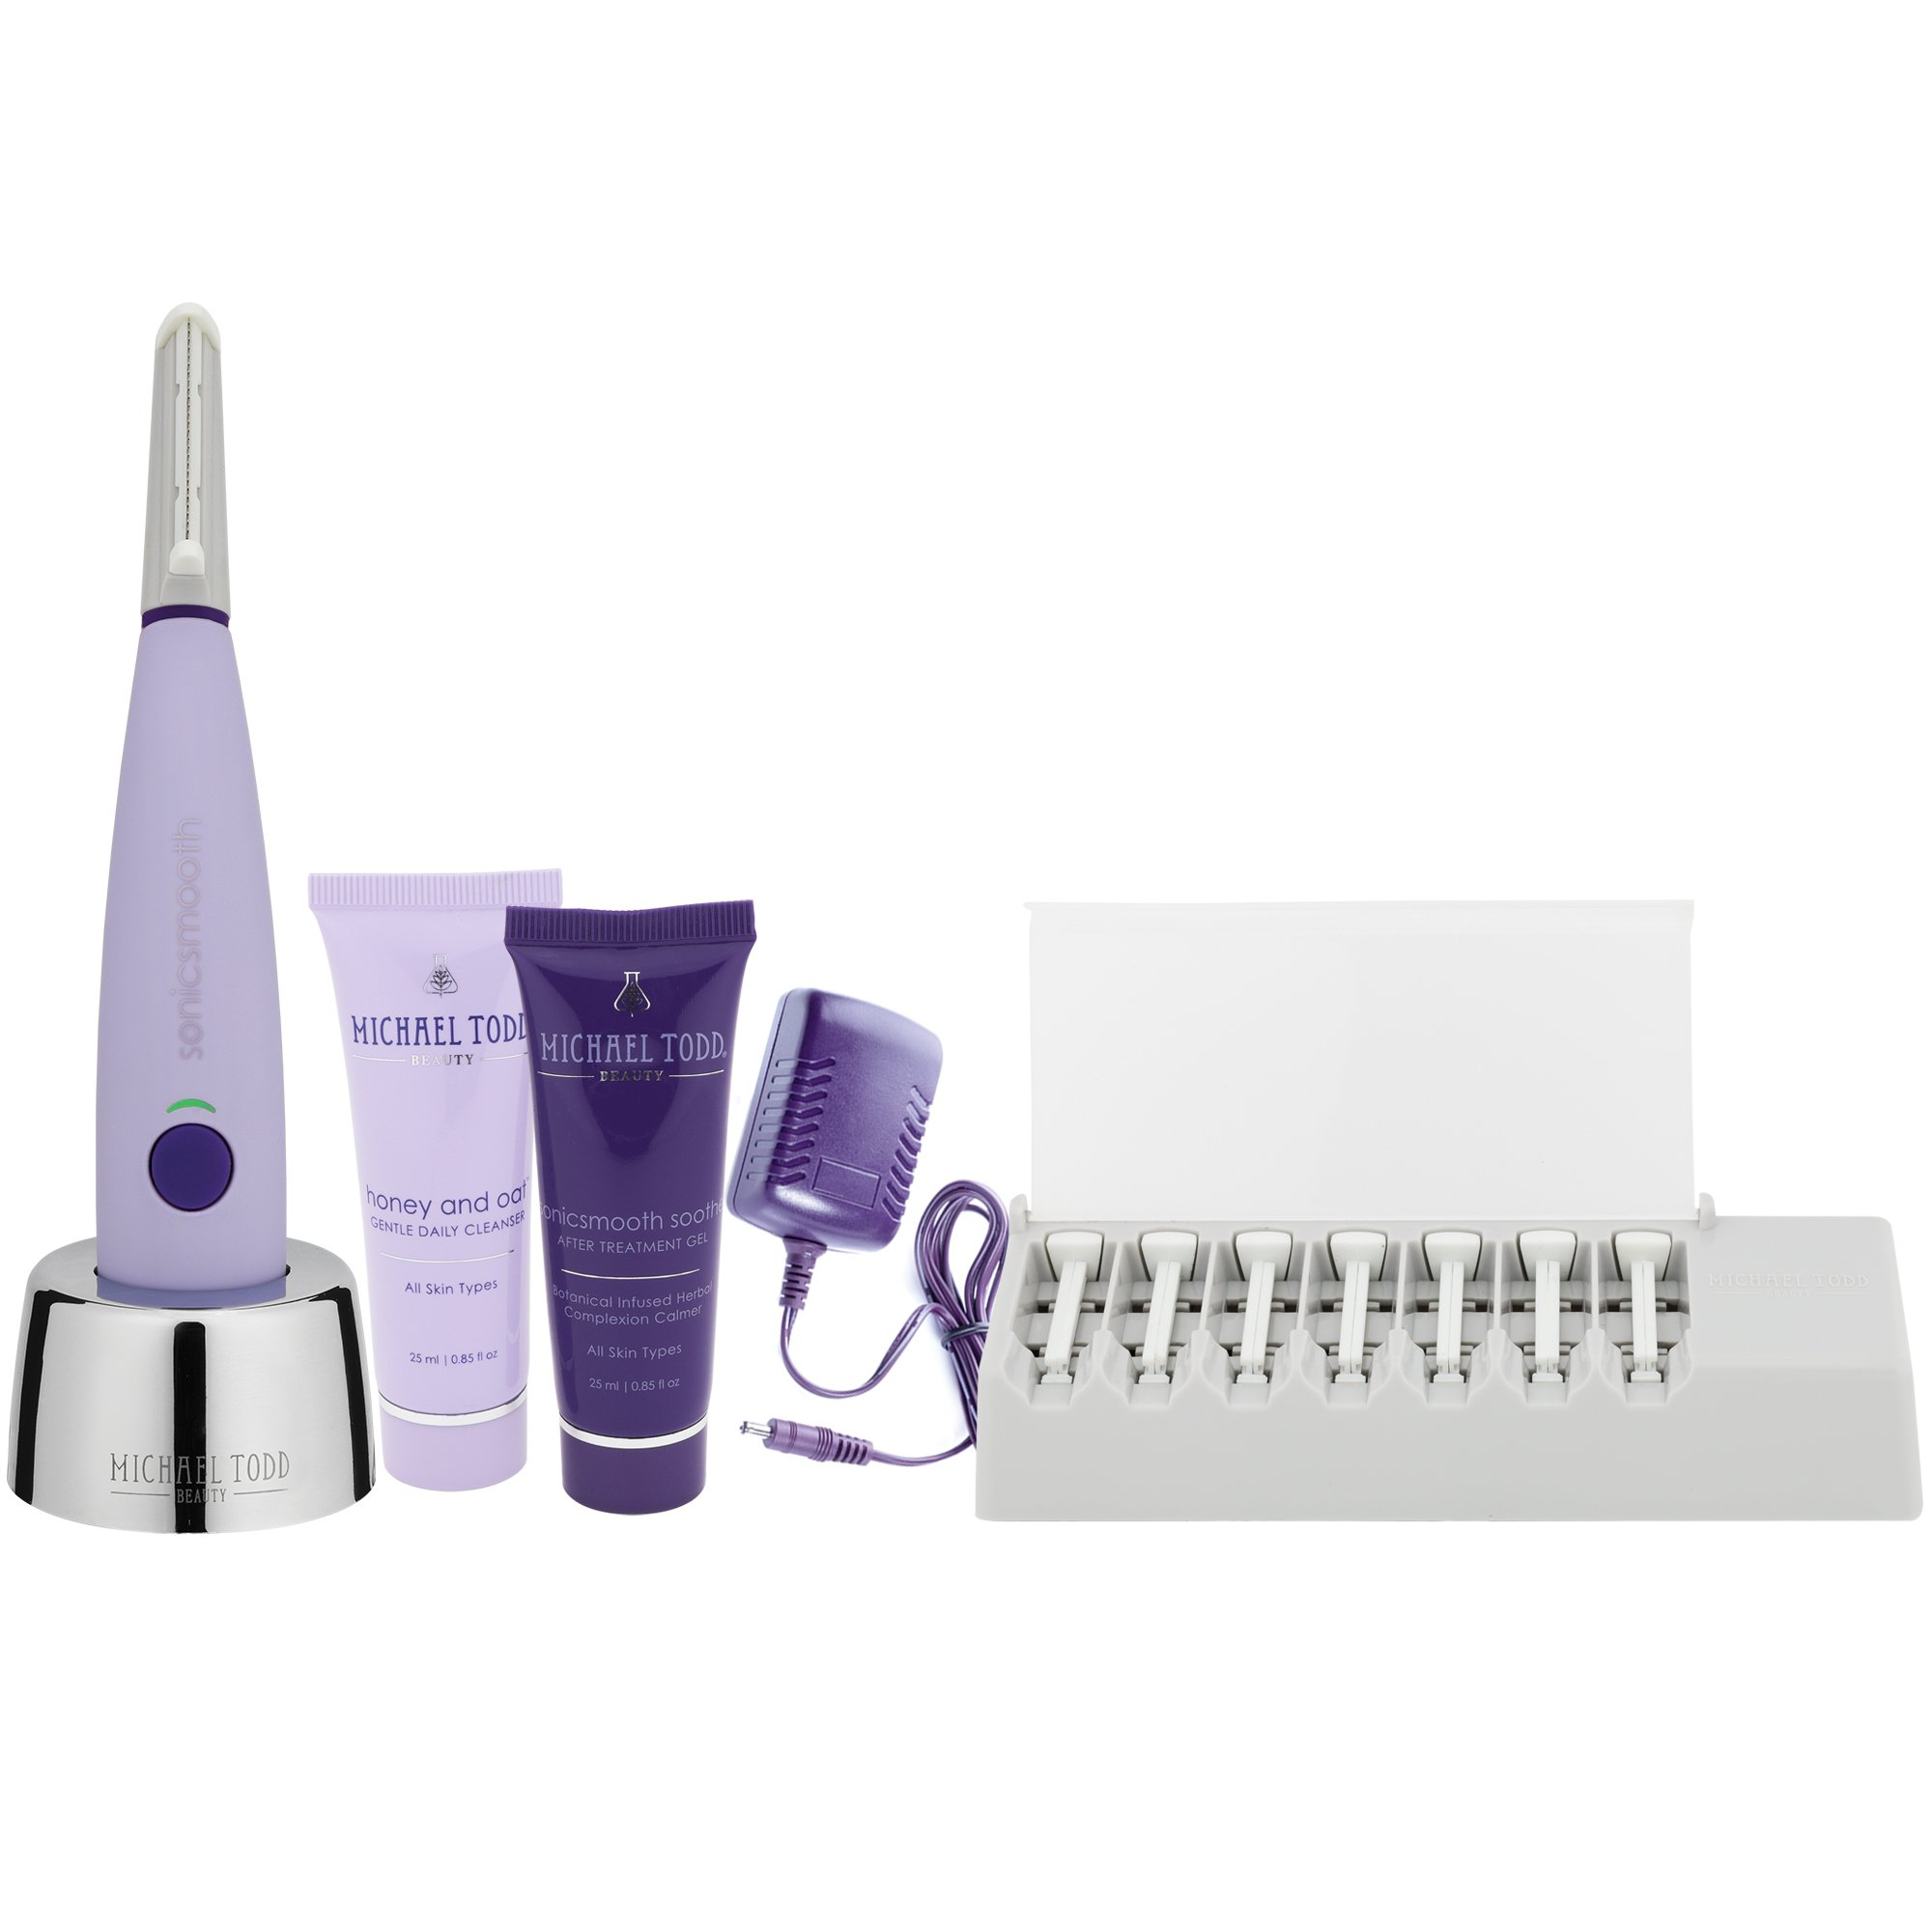 Michael Todd Sonicsmooth At-Home Dermaplaning Kit with Replacement Safety Edges, Cleanser & Serum, Sonic Powered Peach Fuzz Remover and Exfoliation Tool, Lavender